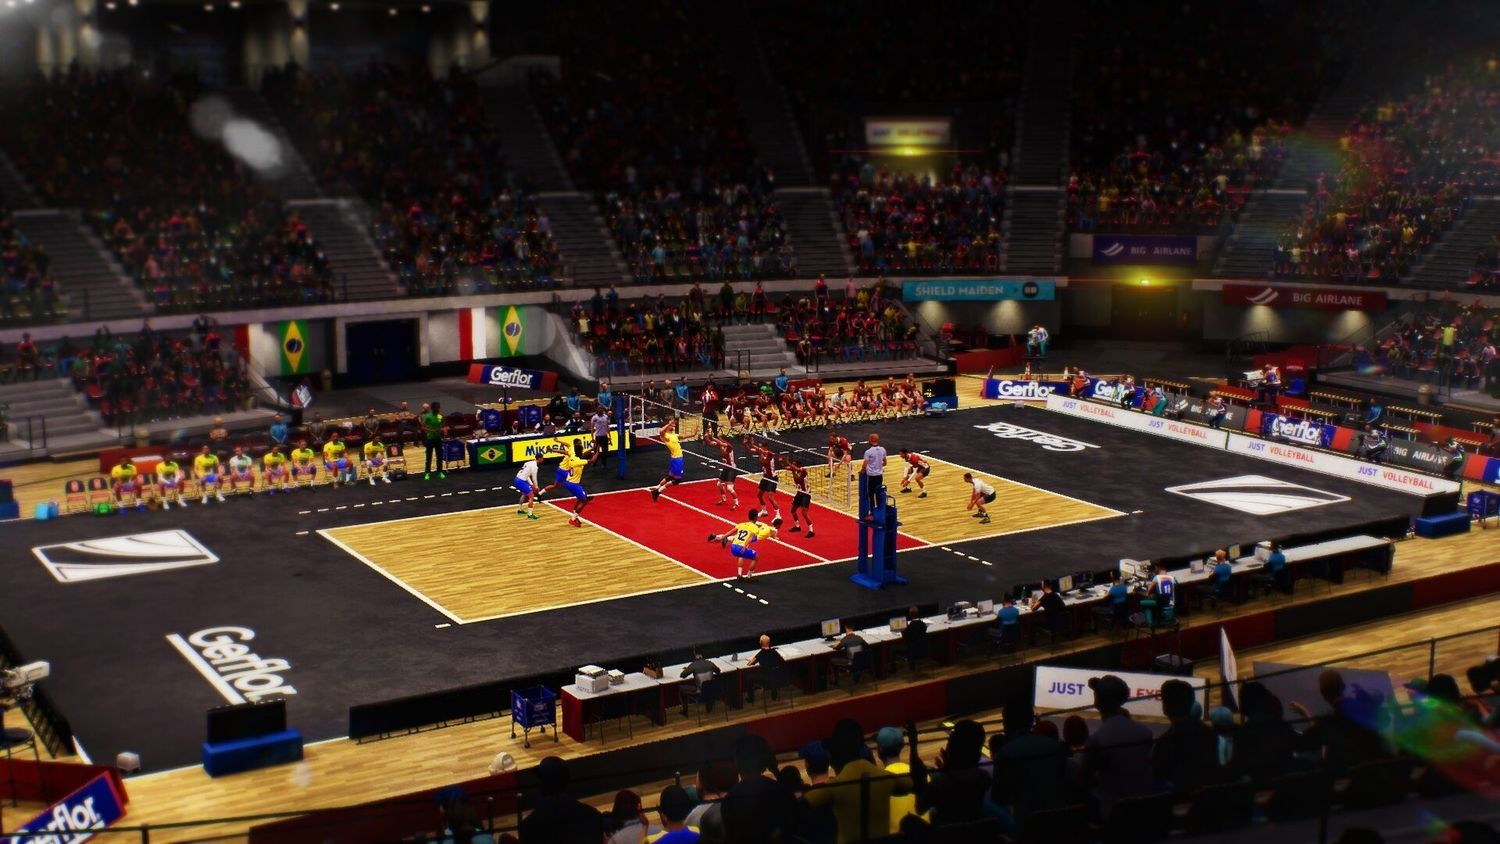 Spike Volleyball (Xbox One) - 6